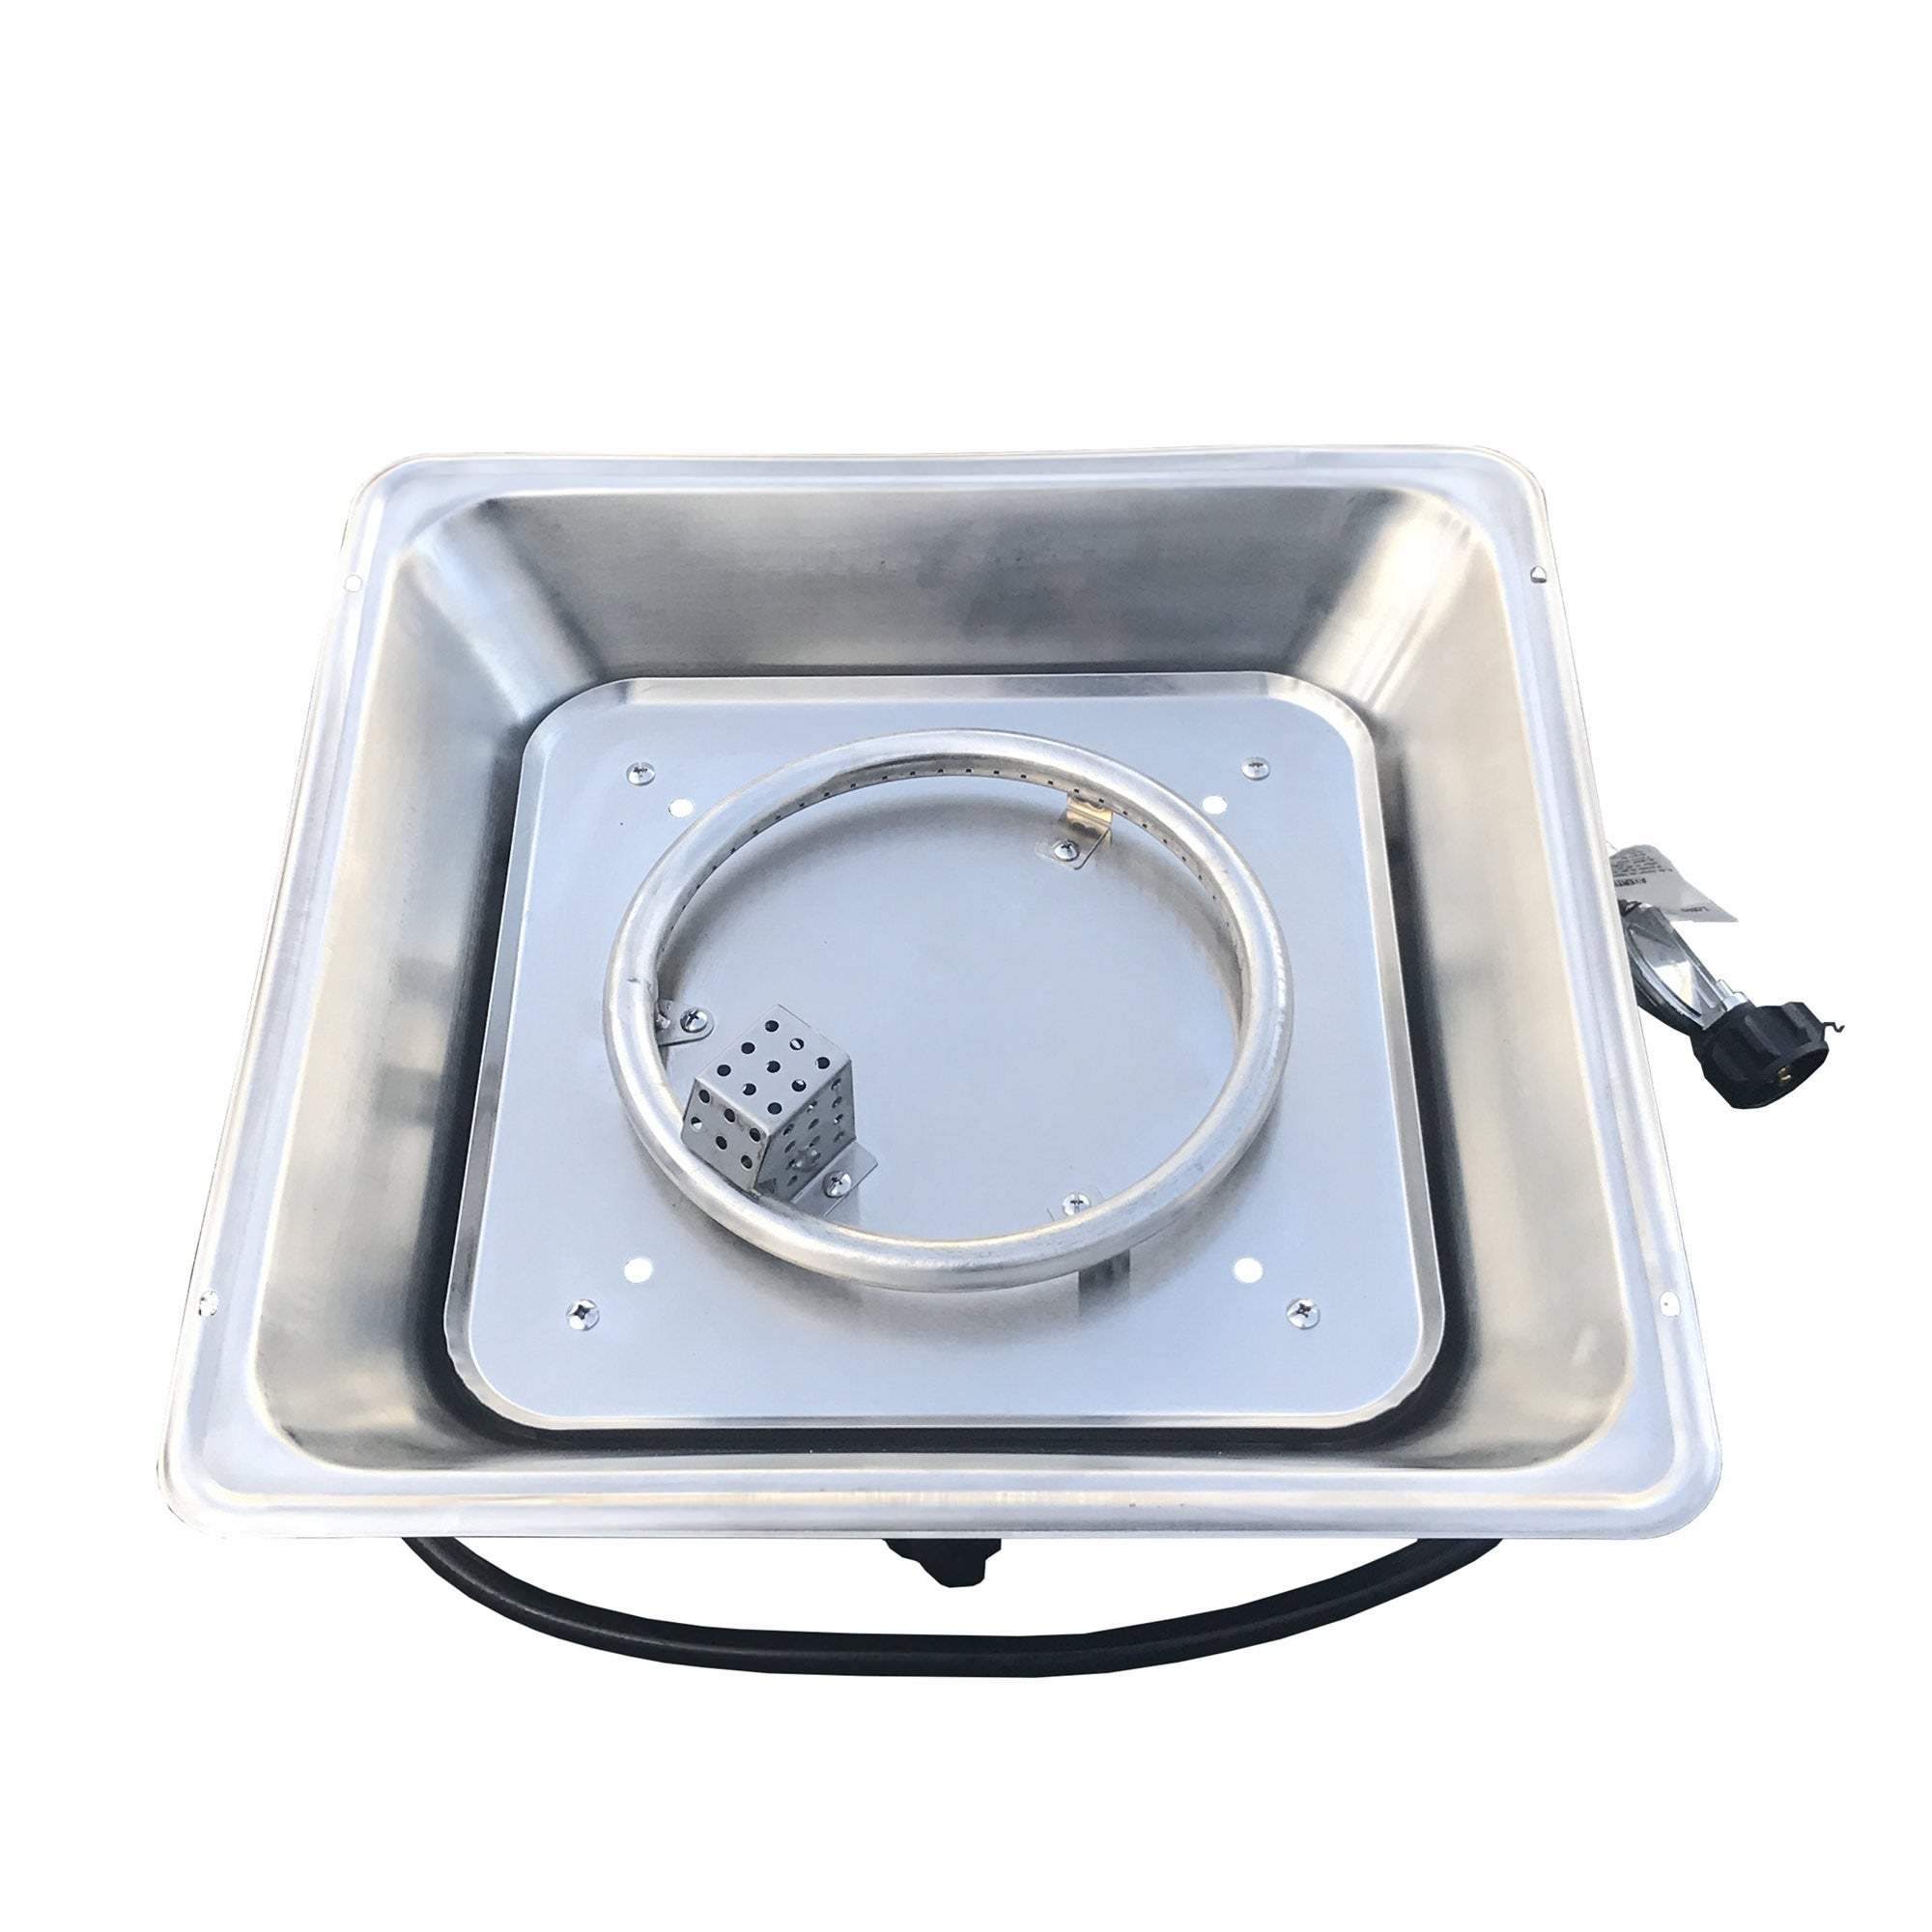 Square Fire Pit Burner With Pan Stainless Steel Silver Overstock 24302196